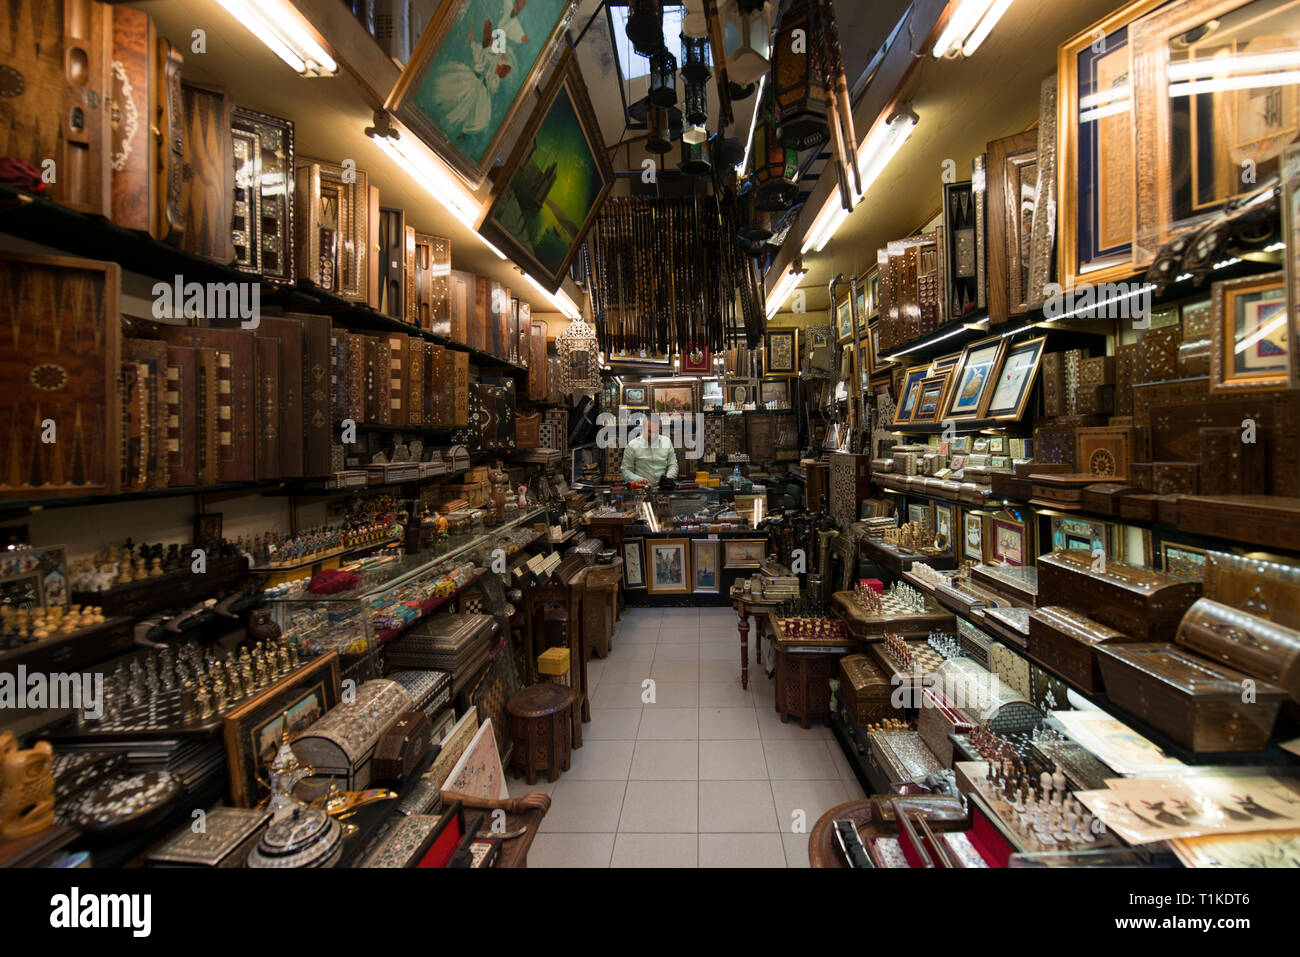 Grand Bazaar, Istanbul, Turkey - 04 23 2016: Antiquarian old and traditional wooden shop in the Grand Bazaar, Istanbul, Turkey - Stock Image